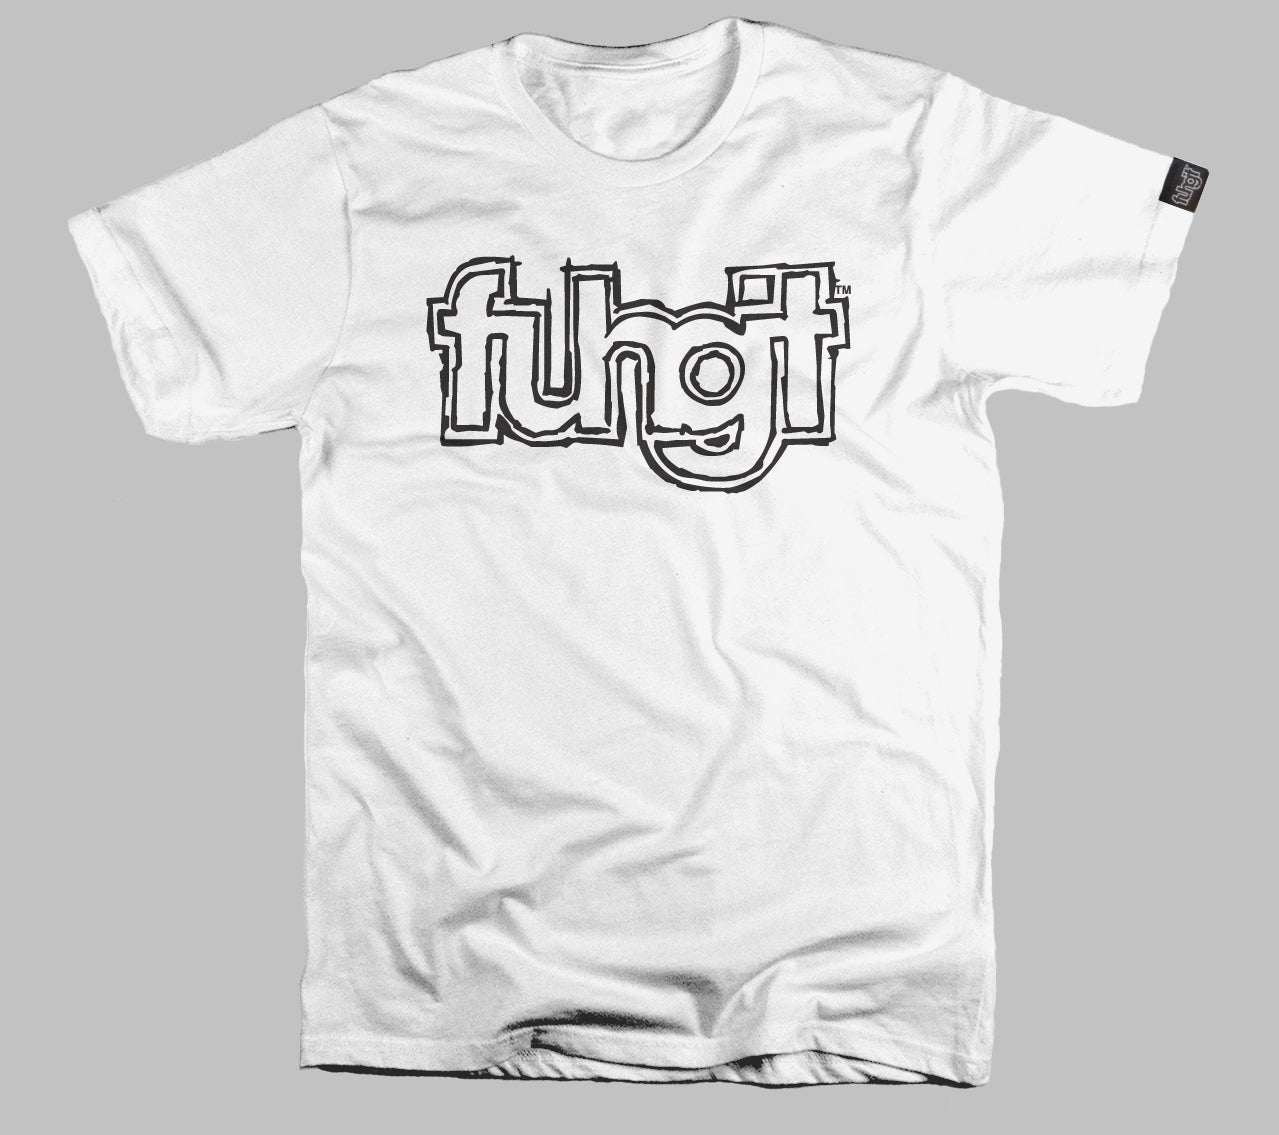 Image of fuhgit™ sketch logo T shirt